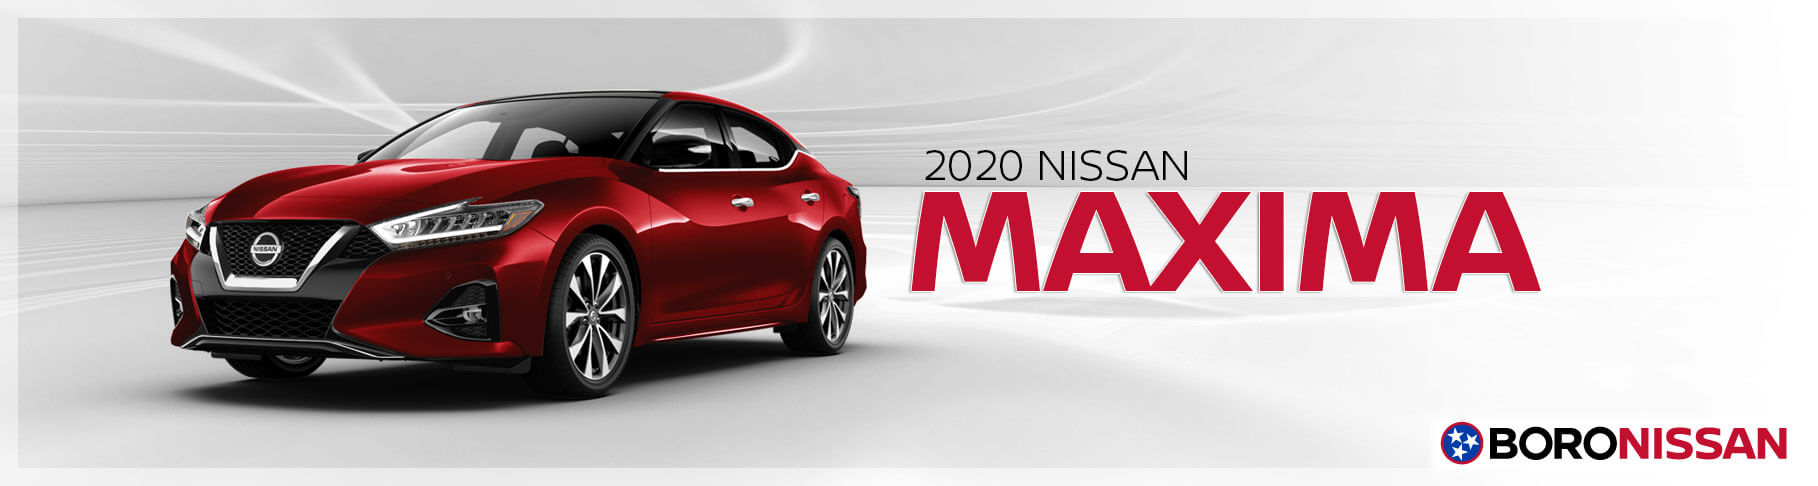 The New 2020 Nissan Maxima Near Nashville, Tennessee